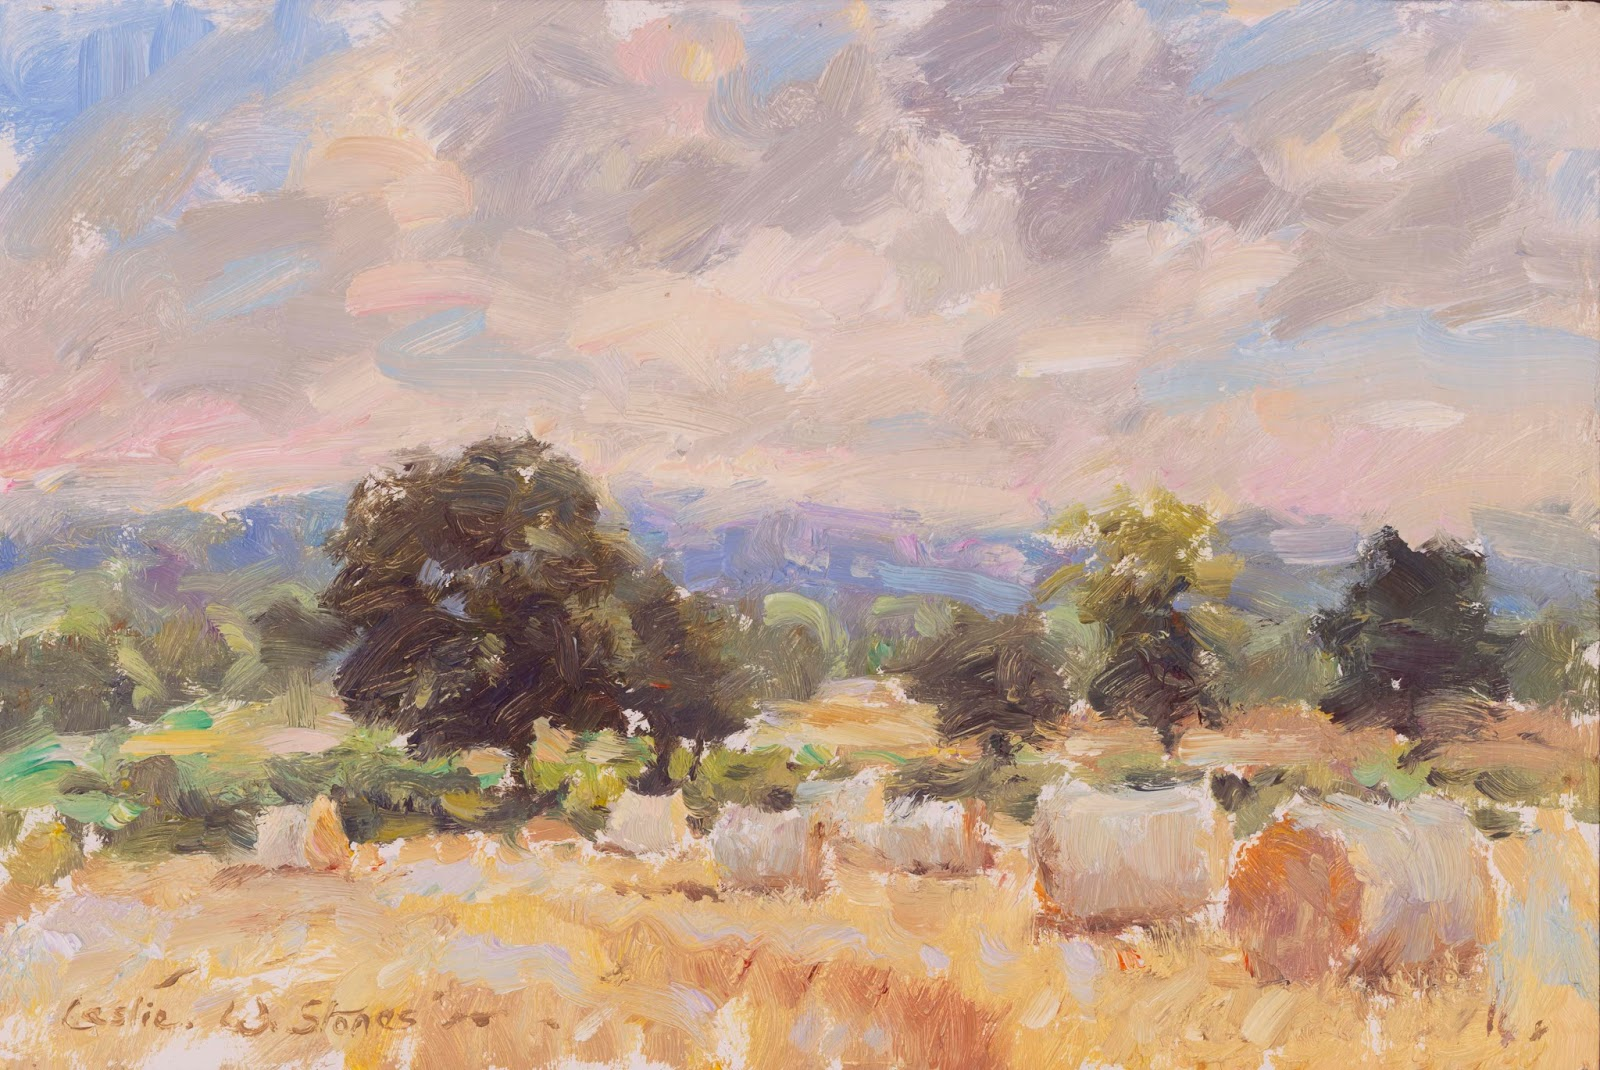 landscape painting of a field with straw bales